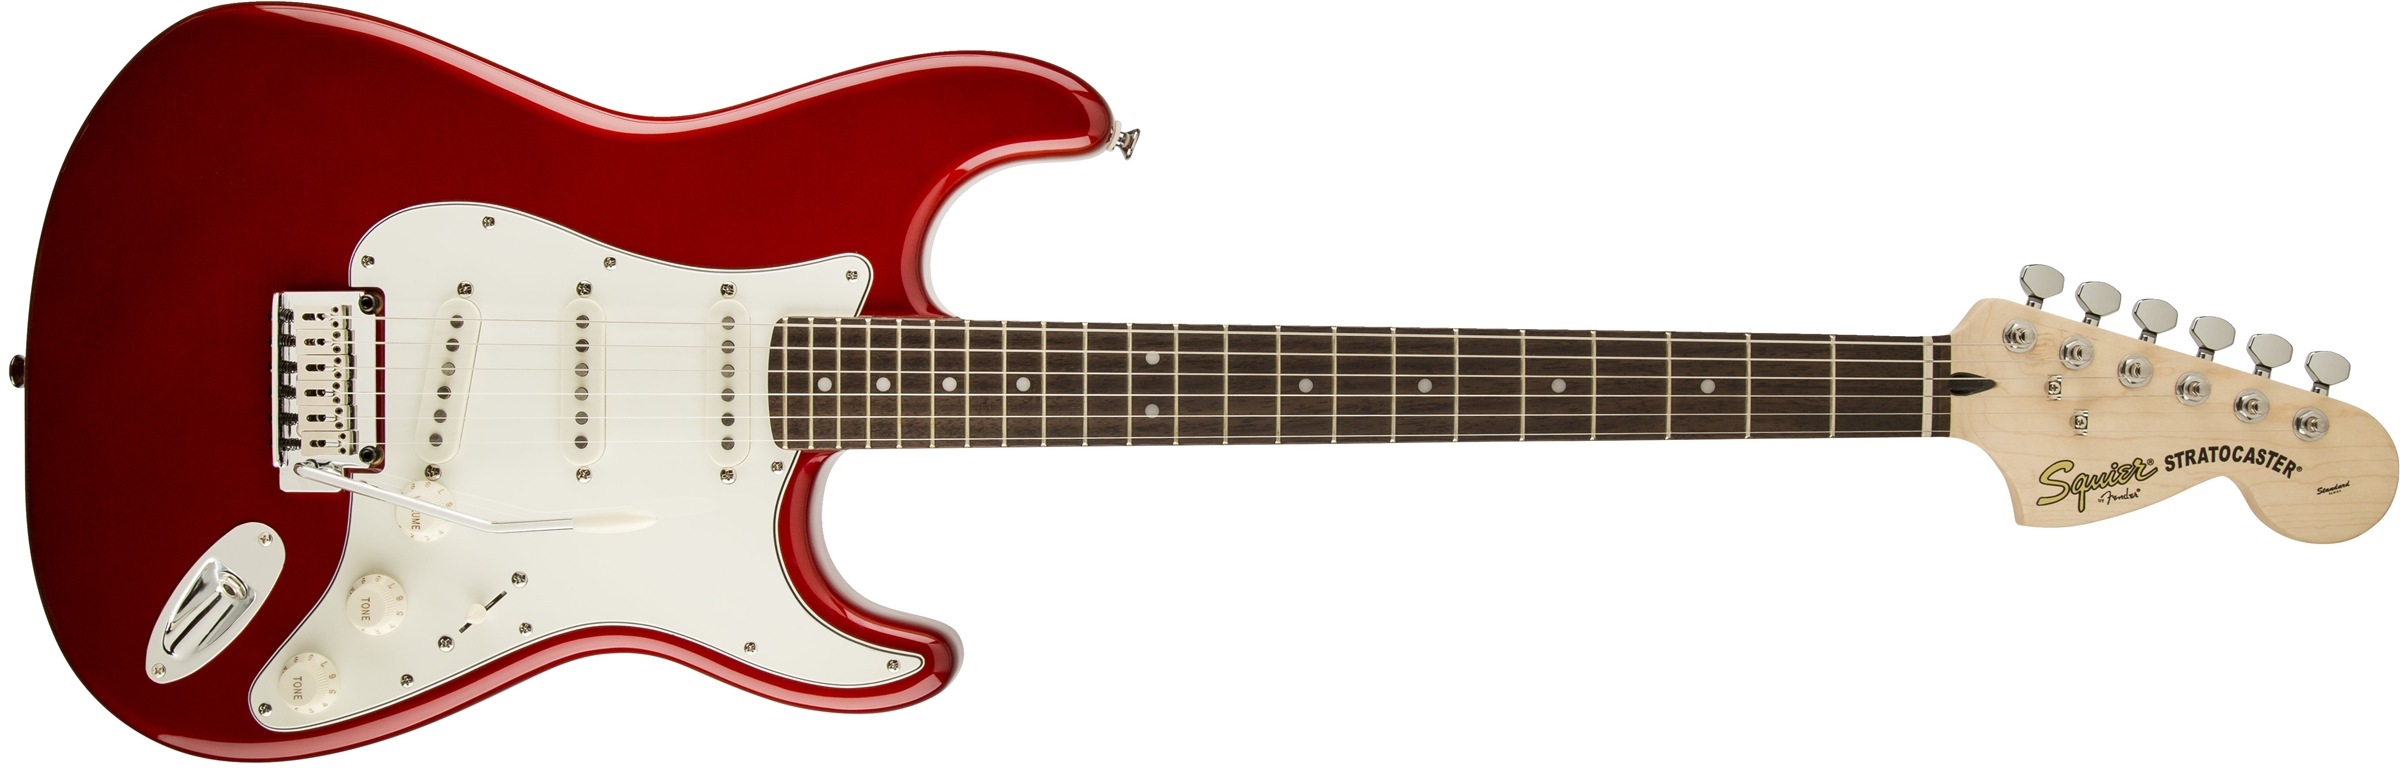 Design Your Own Dream Home Squier 174 Standard Stratocaster 174 Rosewood Fingerboard